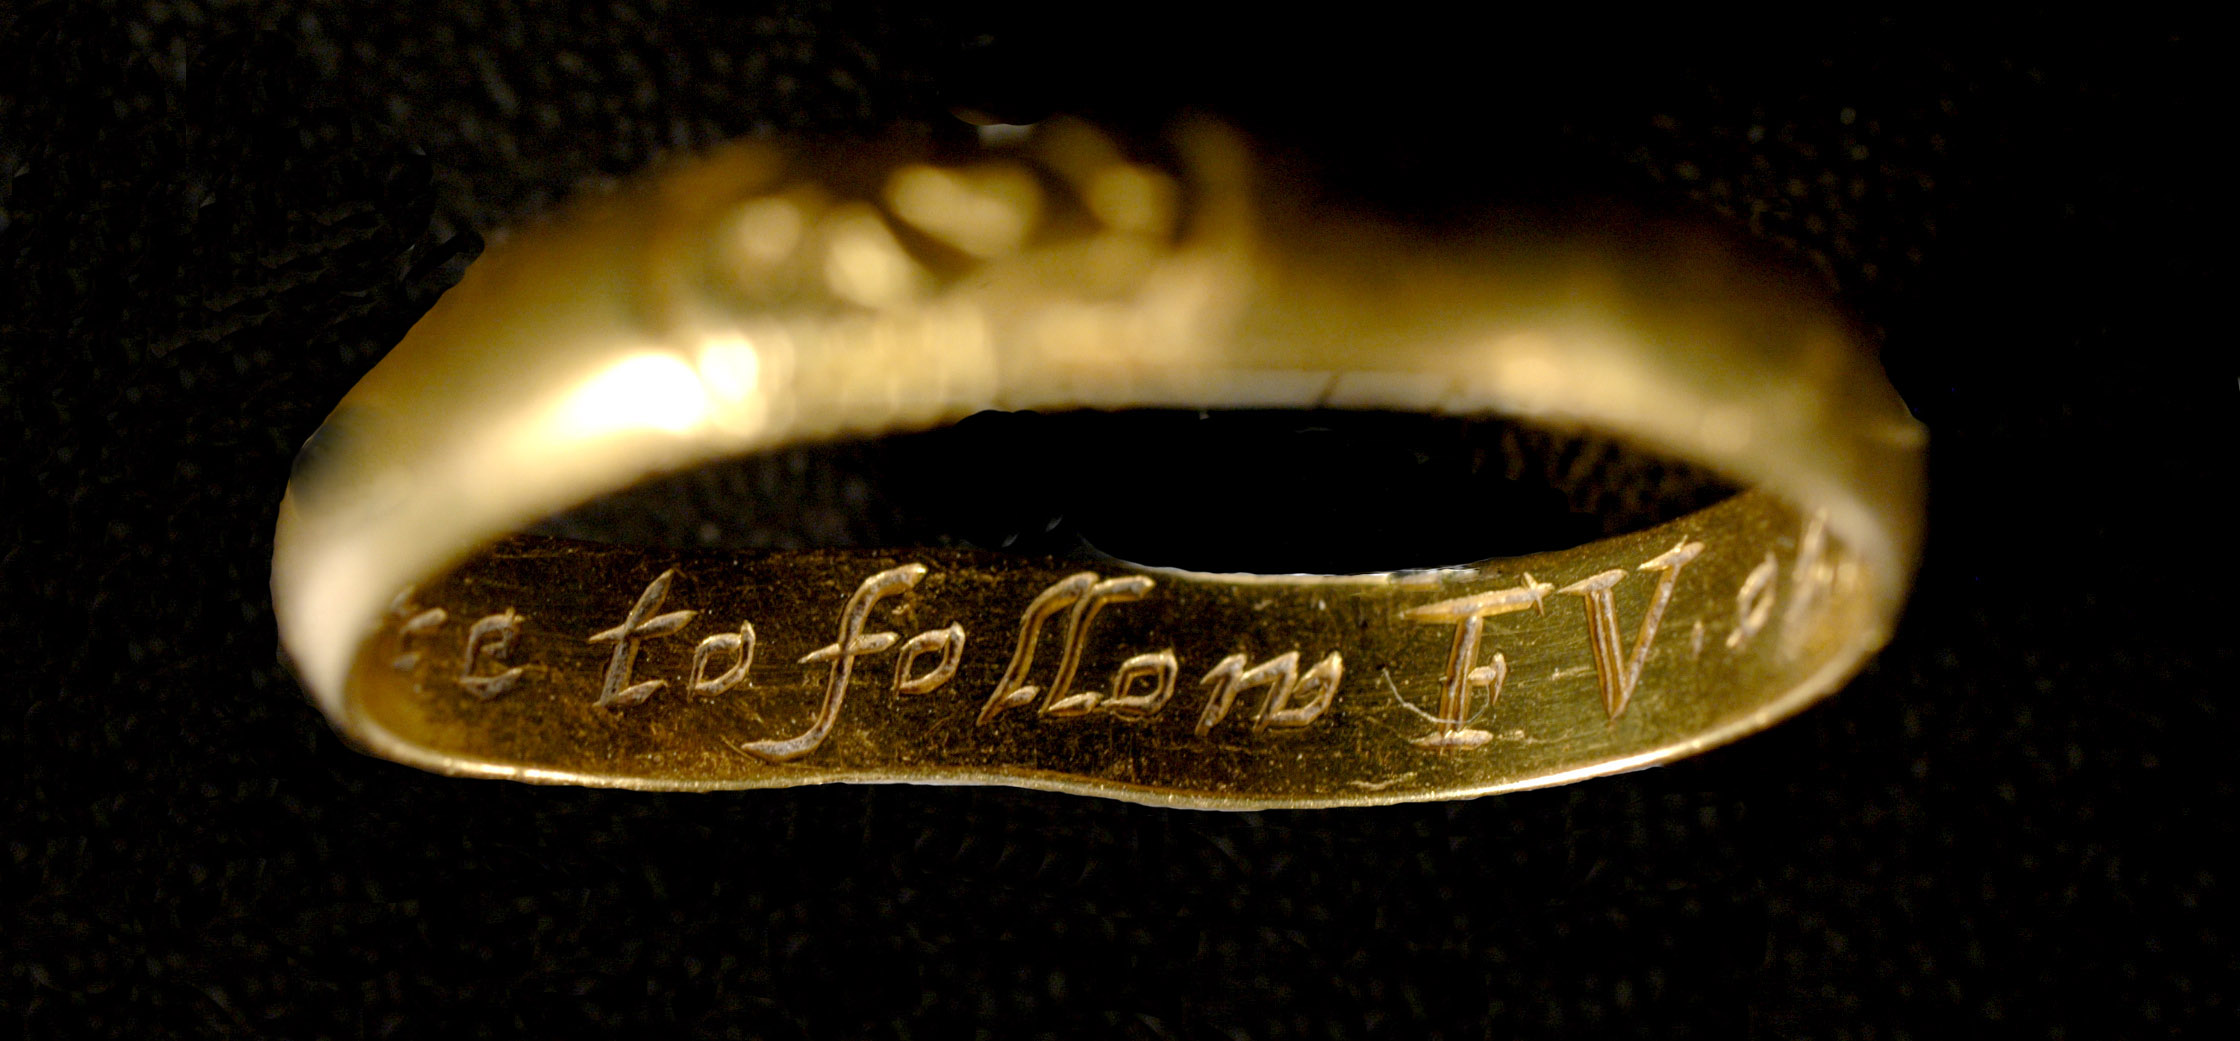 Mourning ring inscription detail